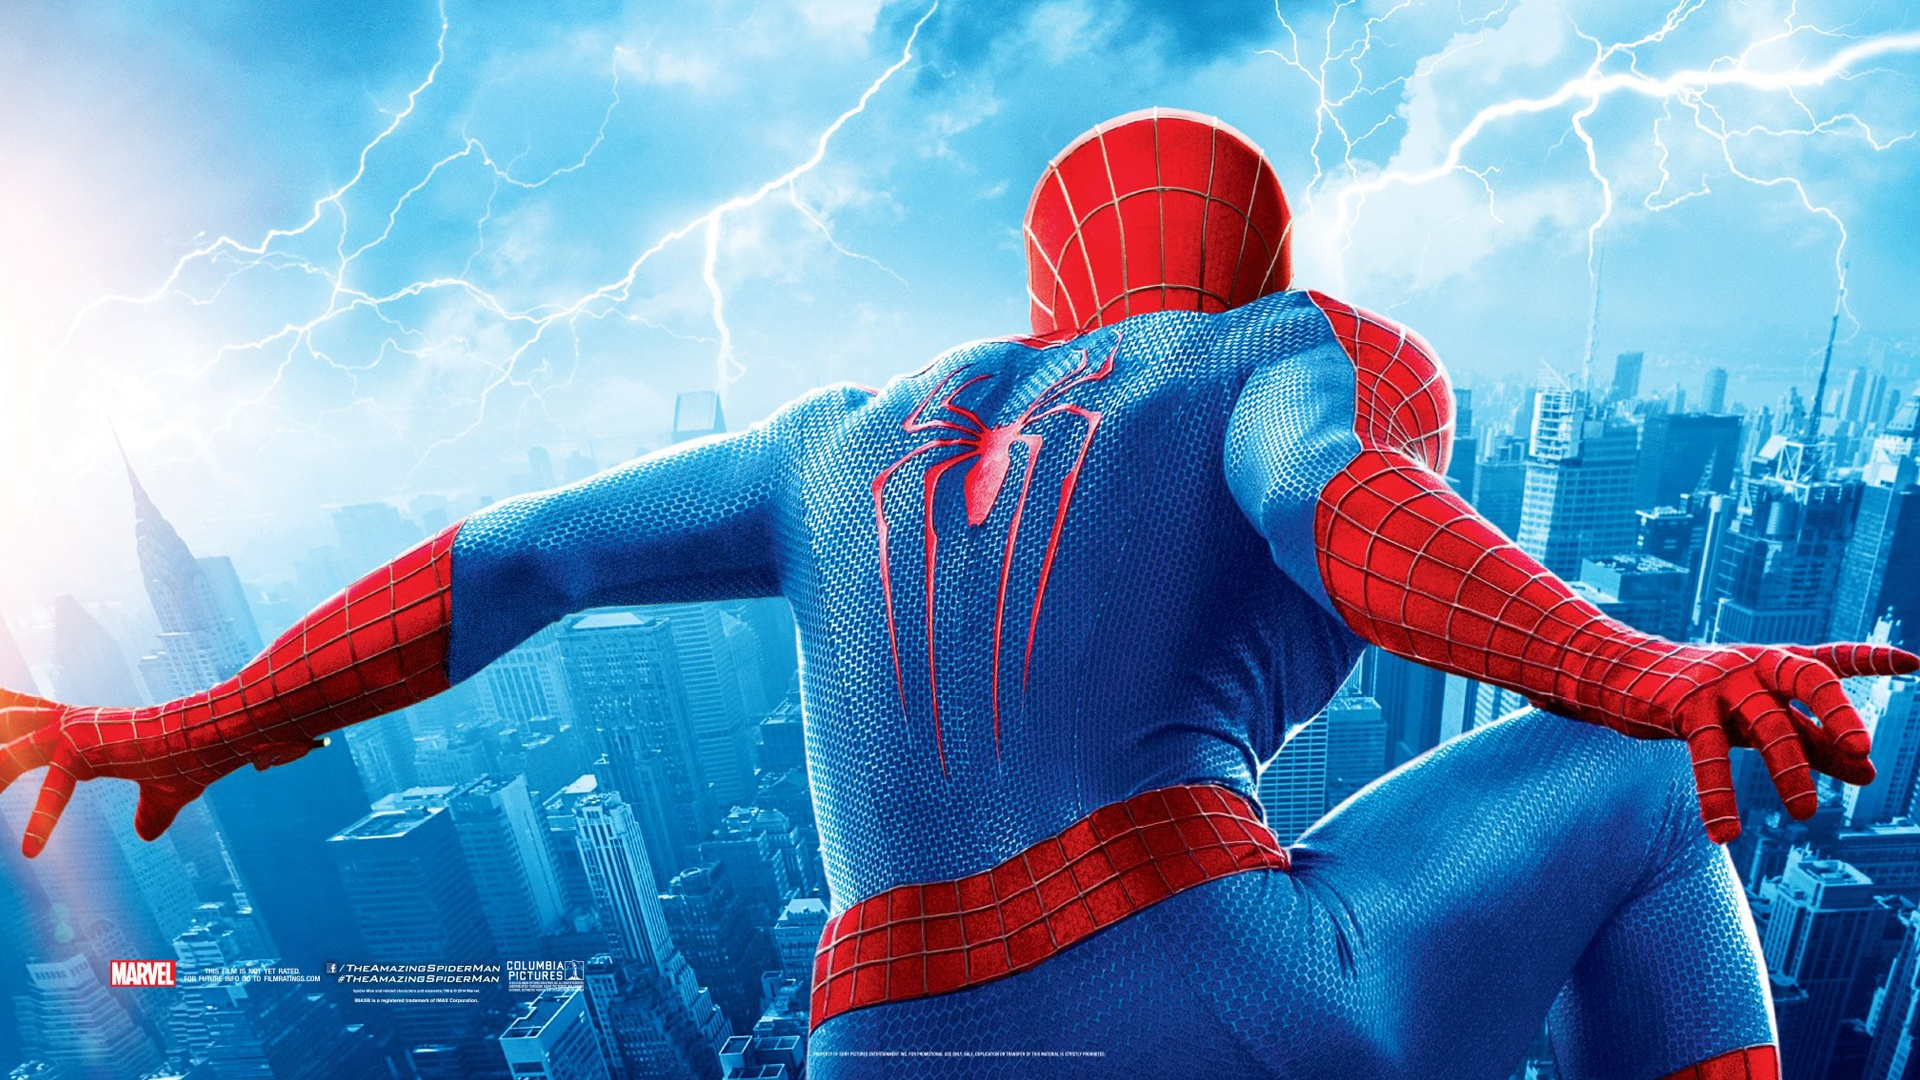 Amazing Spider-Man Hero Movie